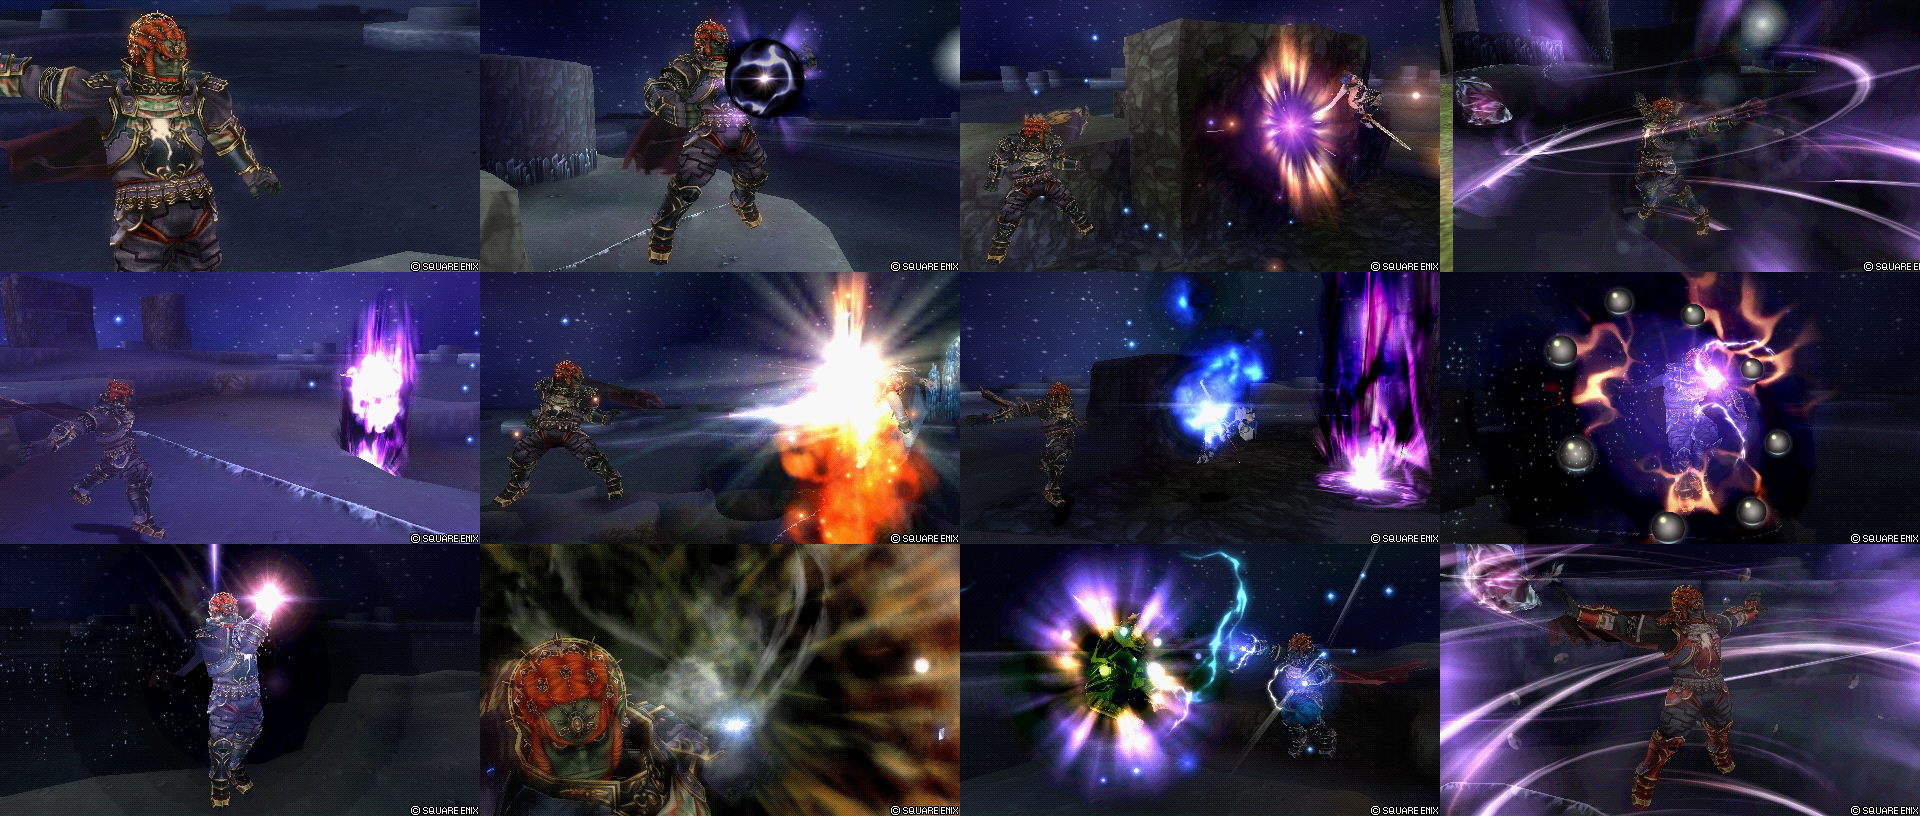 dissidia_012_mods__ganondorf__smash_3ds_